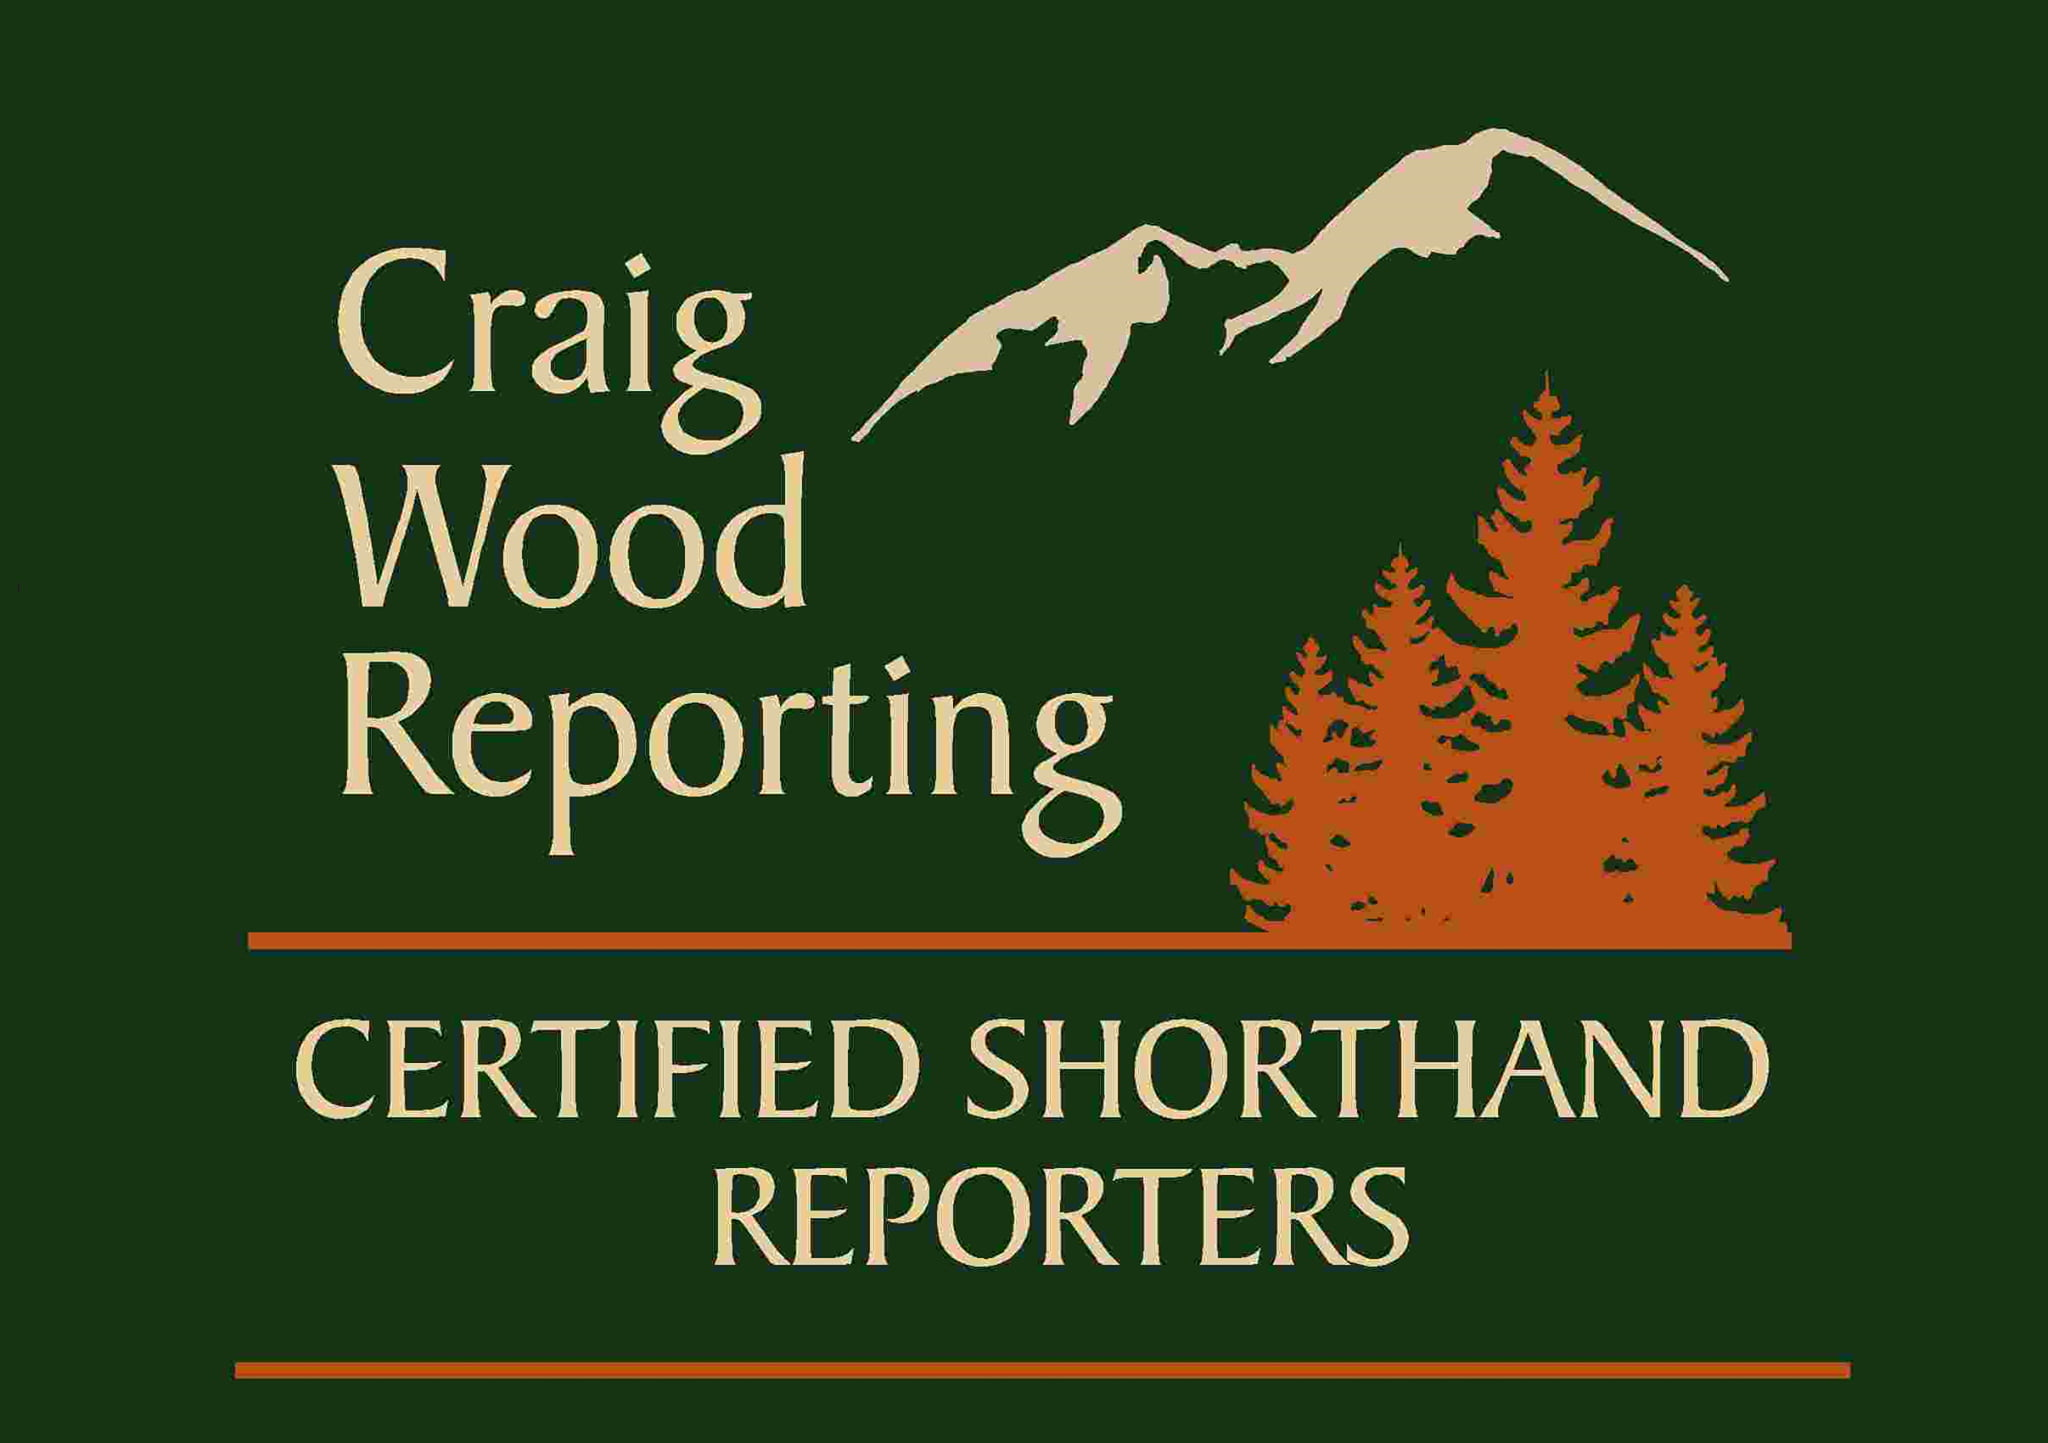 Craig Wood Reporting